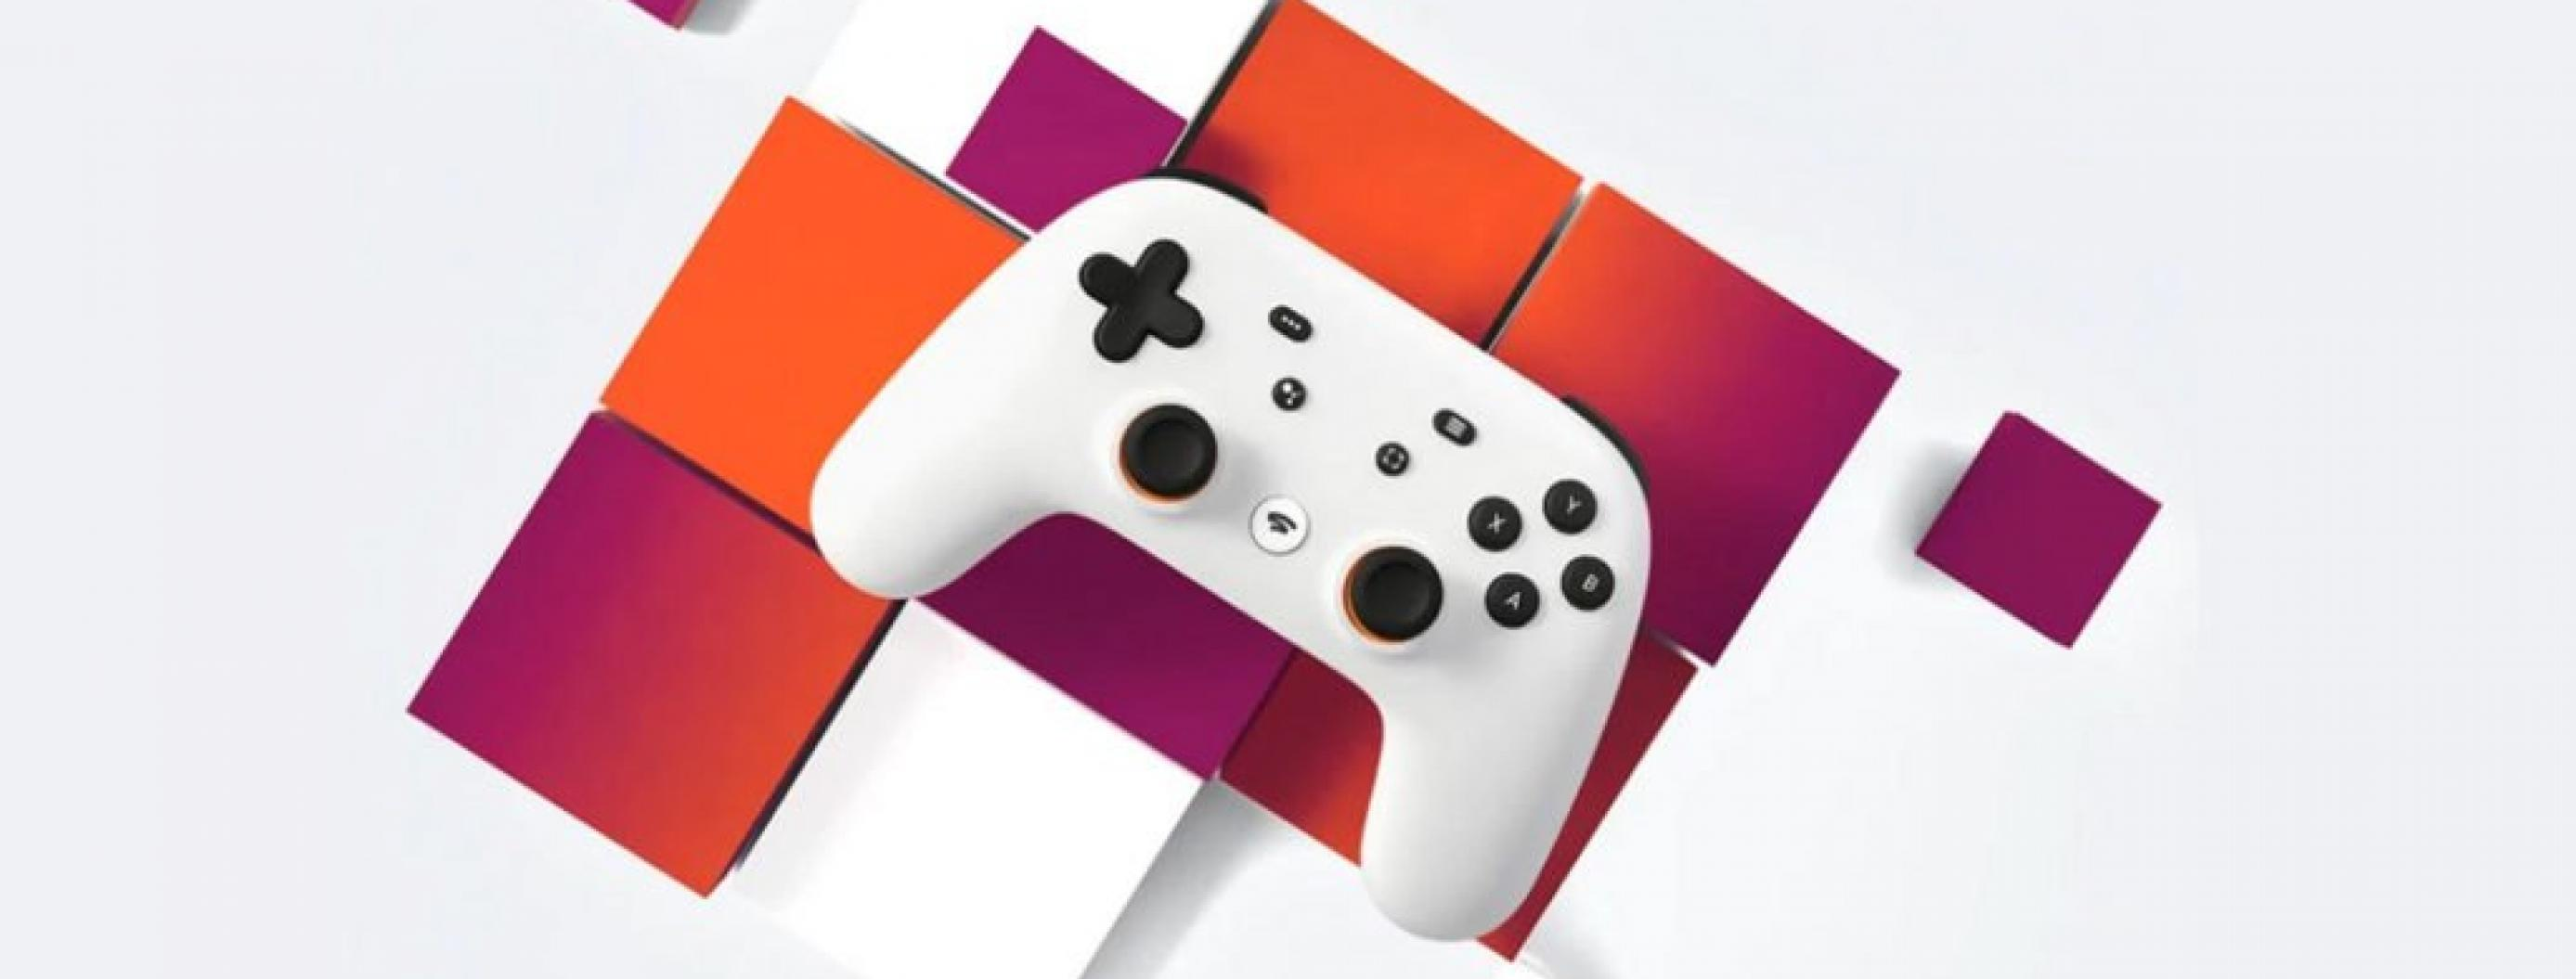 Google Reveals Its New Cloud Gaming Service Called Stadia